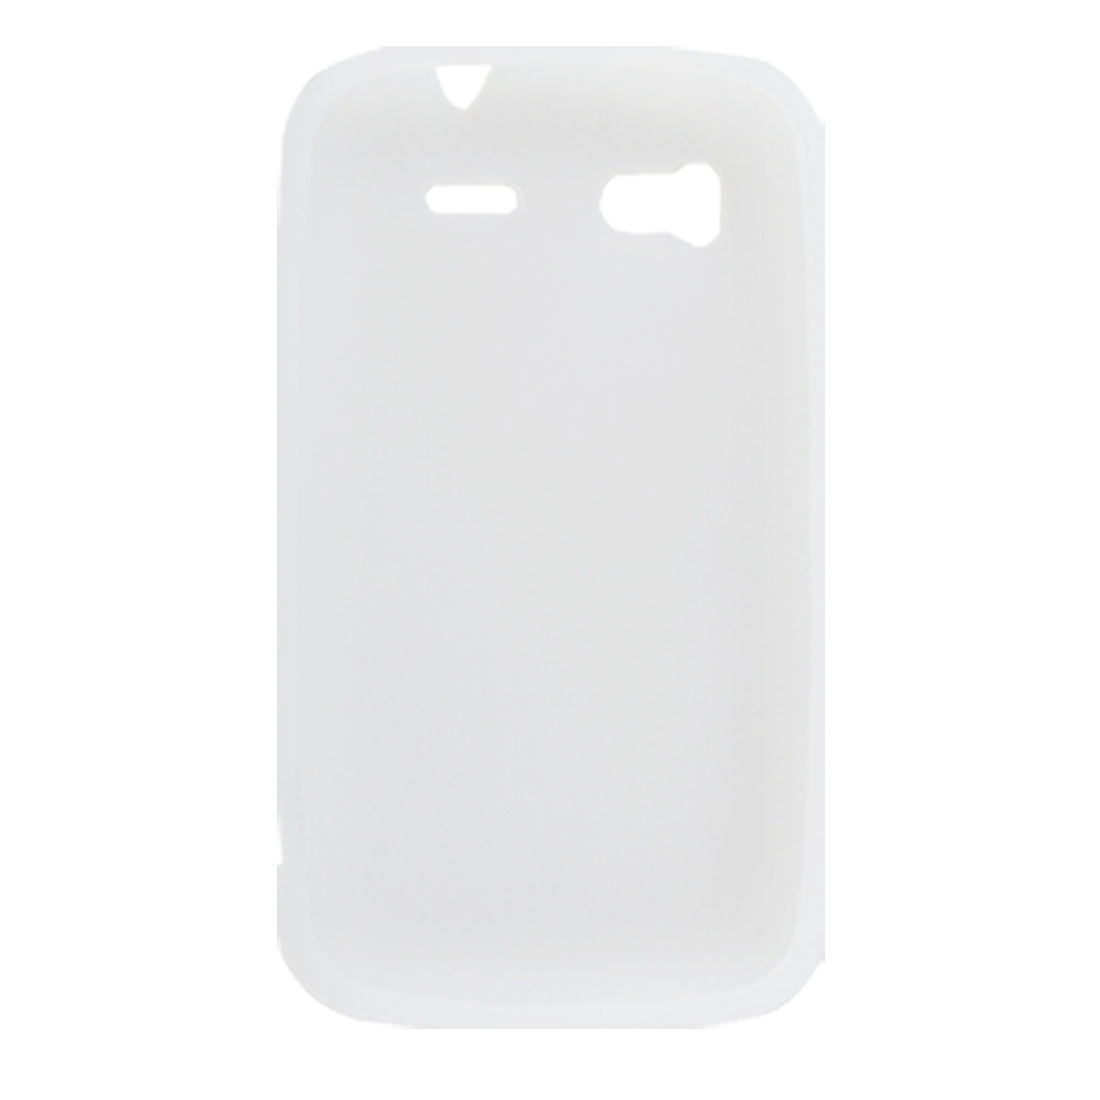 White Silicone Protective Case Cover for HTC Sensation 4G